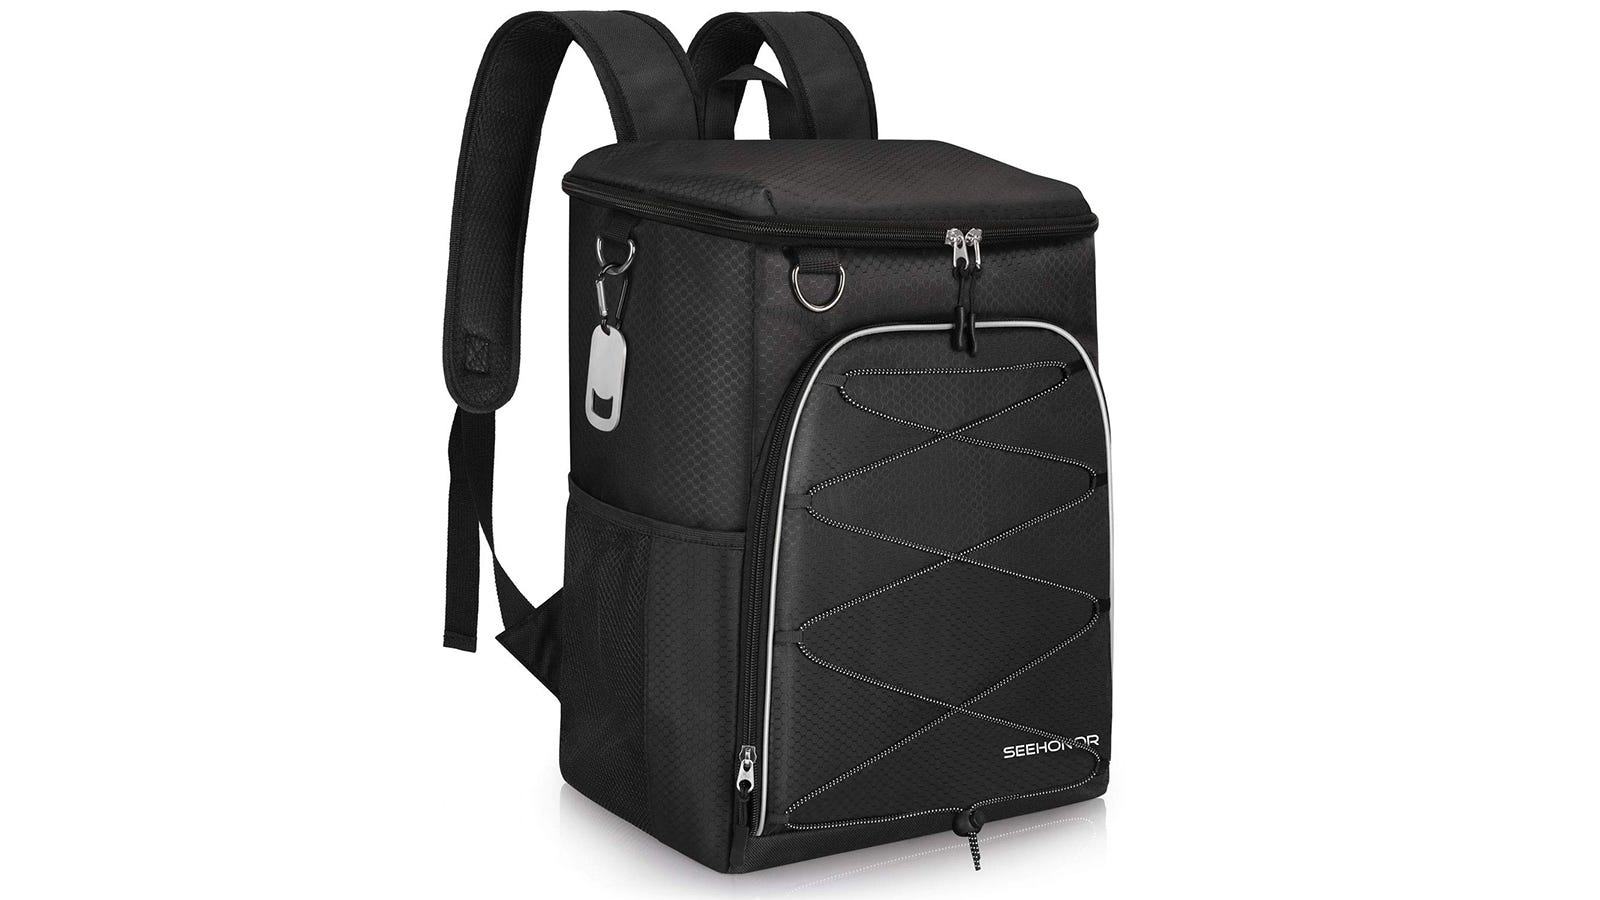 The SEEHONOR Insulated Cooler Backpack.